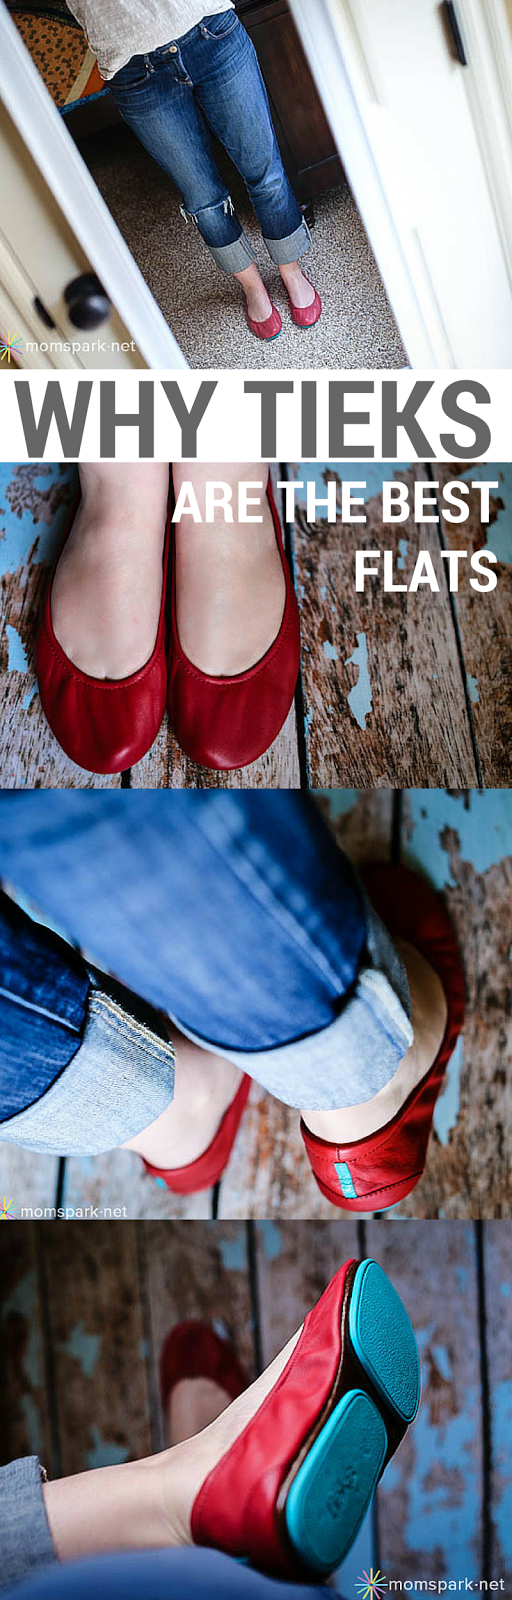 The Comfort of Tieks Ballet Flats.